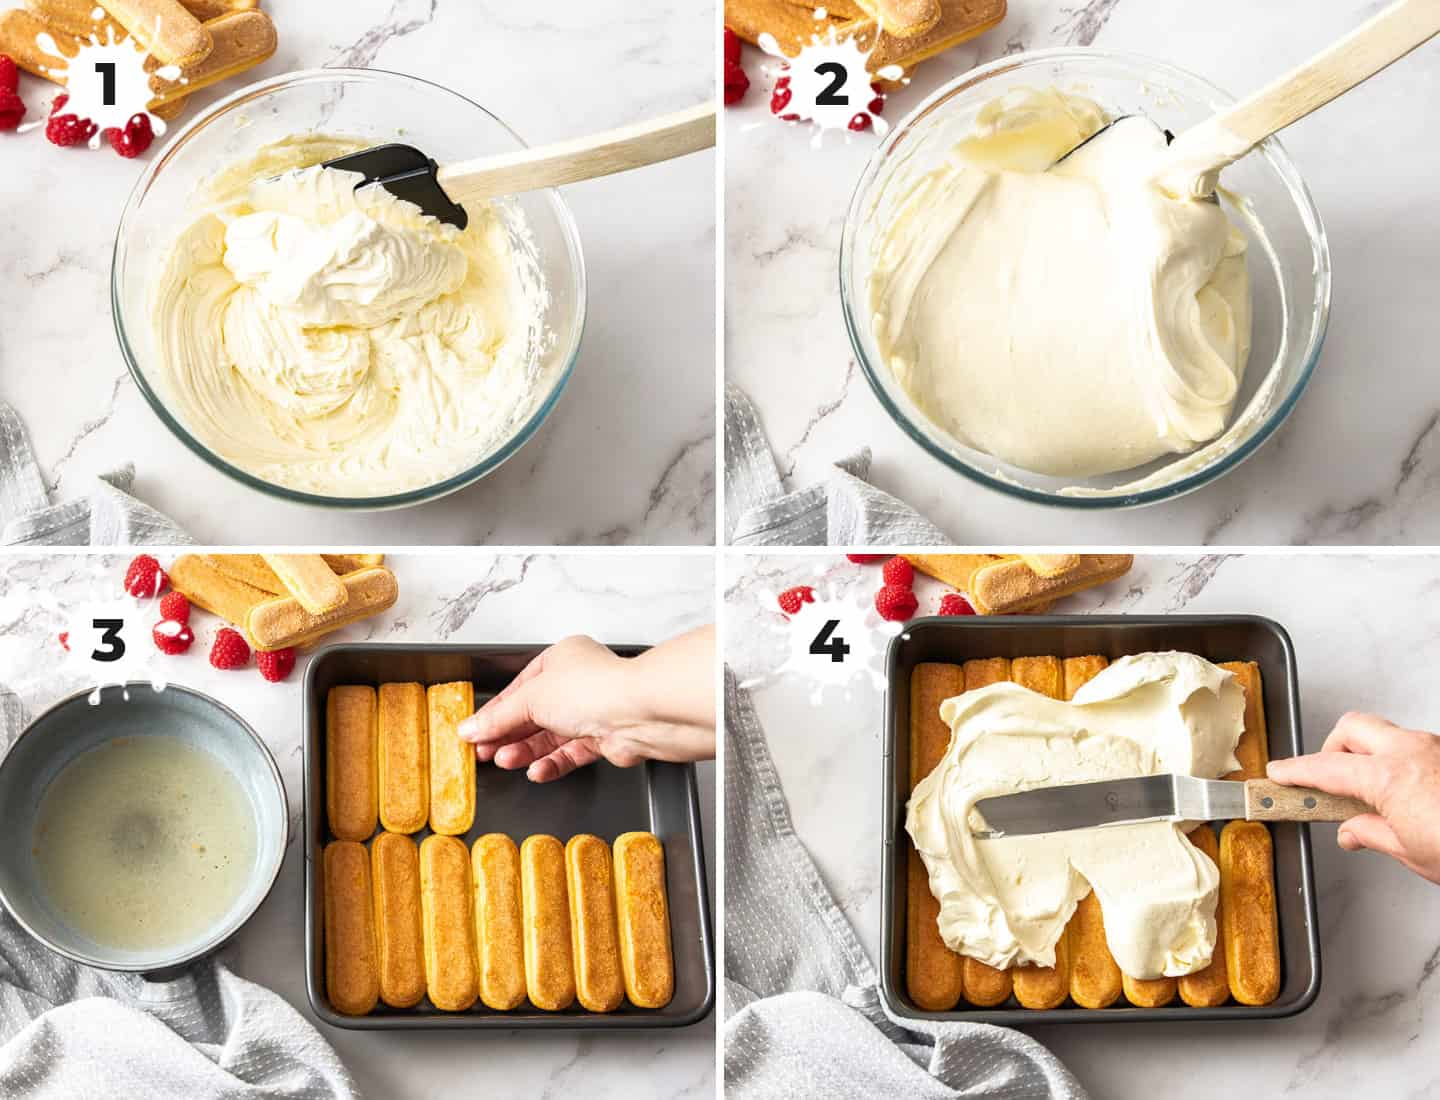 A collage of 4 images showing the cream mixture for tiramisu.